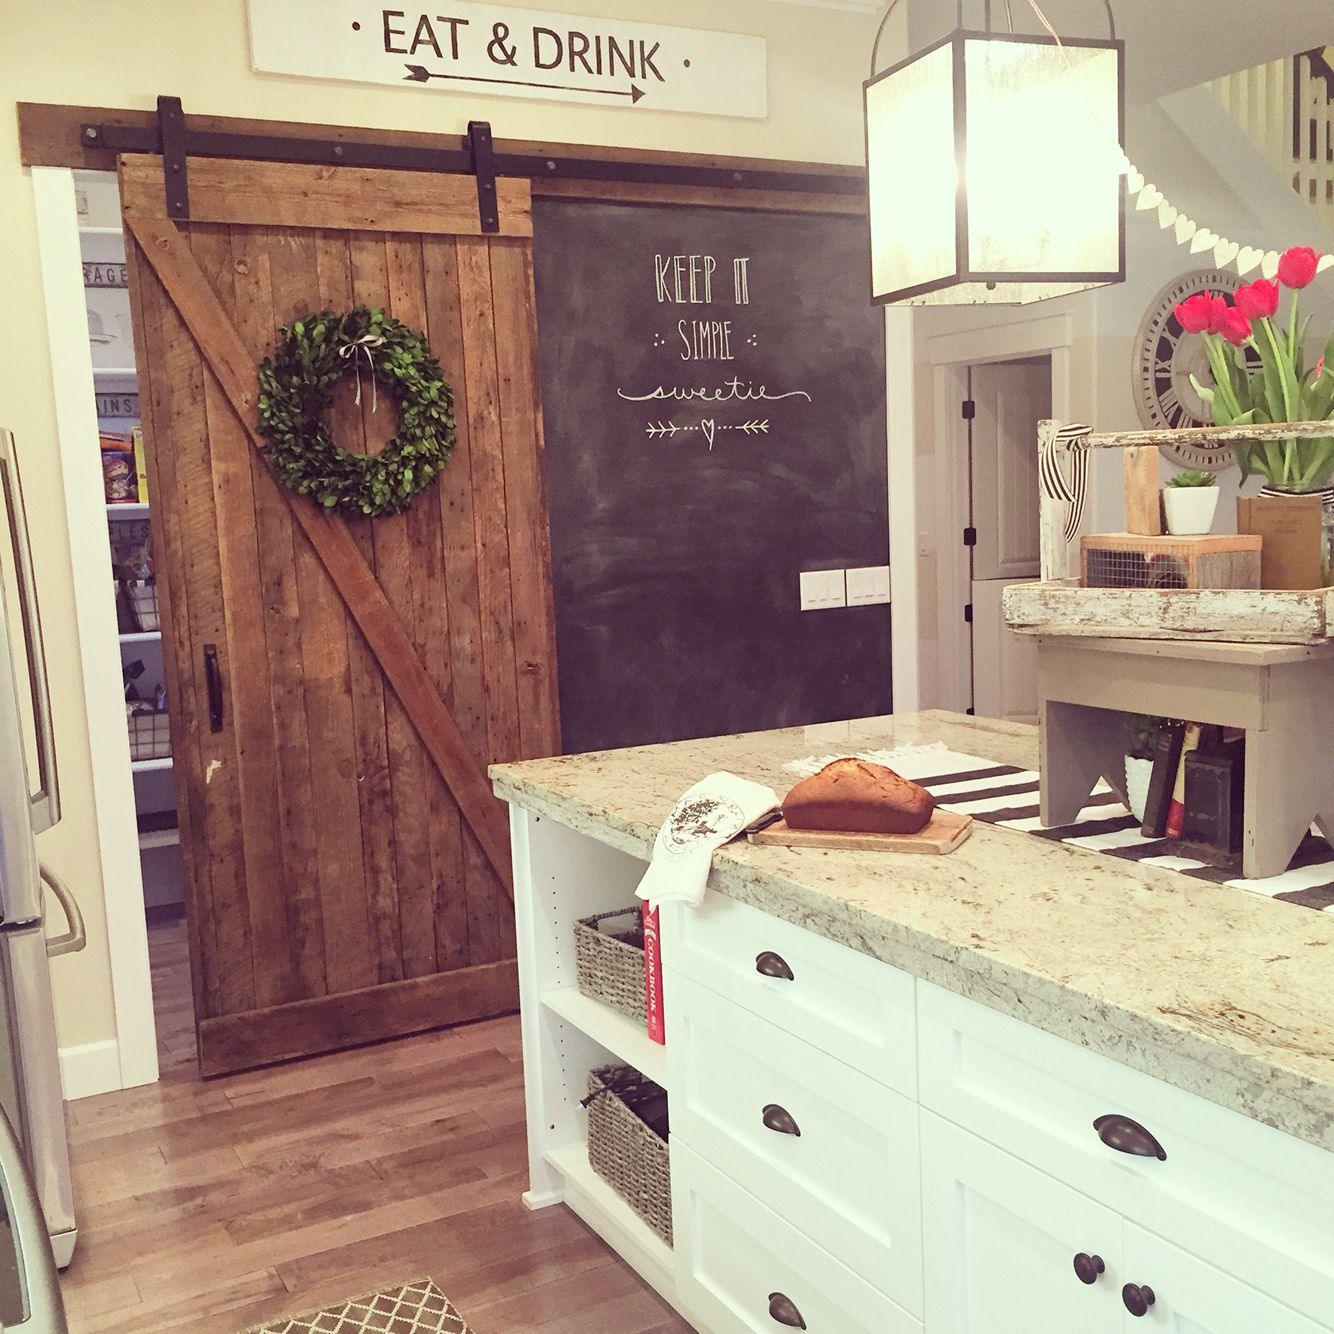 White Kitchen Cabinets Yellow Granite: A Rustic Barn Door Crafted From Salvaged Barn Wood Is A